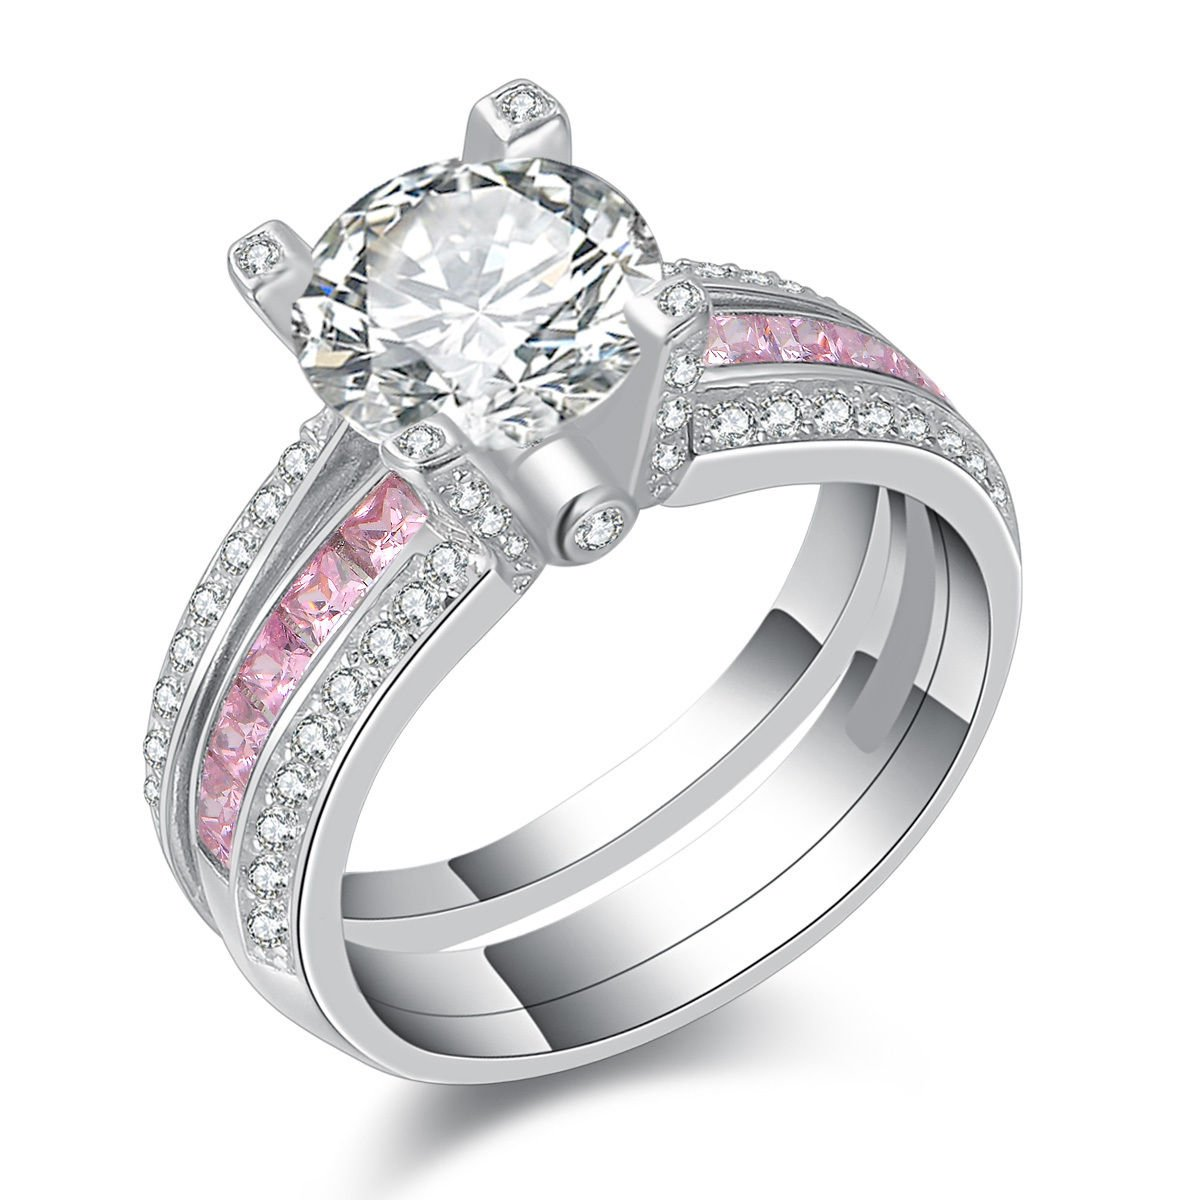 Newshe Jewellery Round Pink Cz 925 Sterling Silver Wedding Band Engagement Ring Sets Size 5-10 JR4579_SS_P